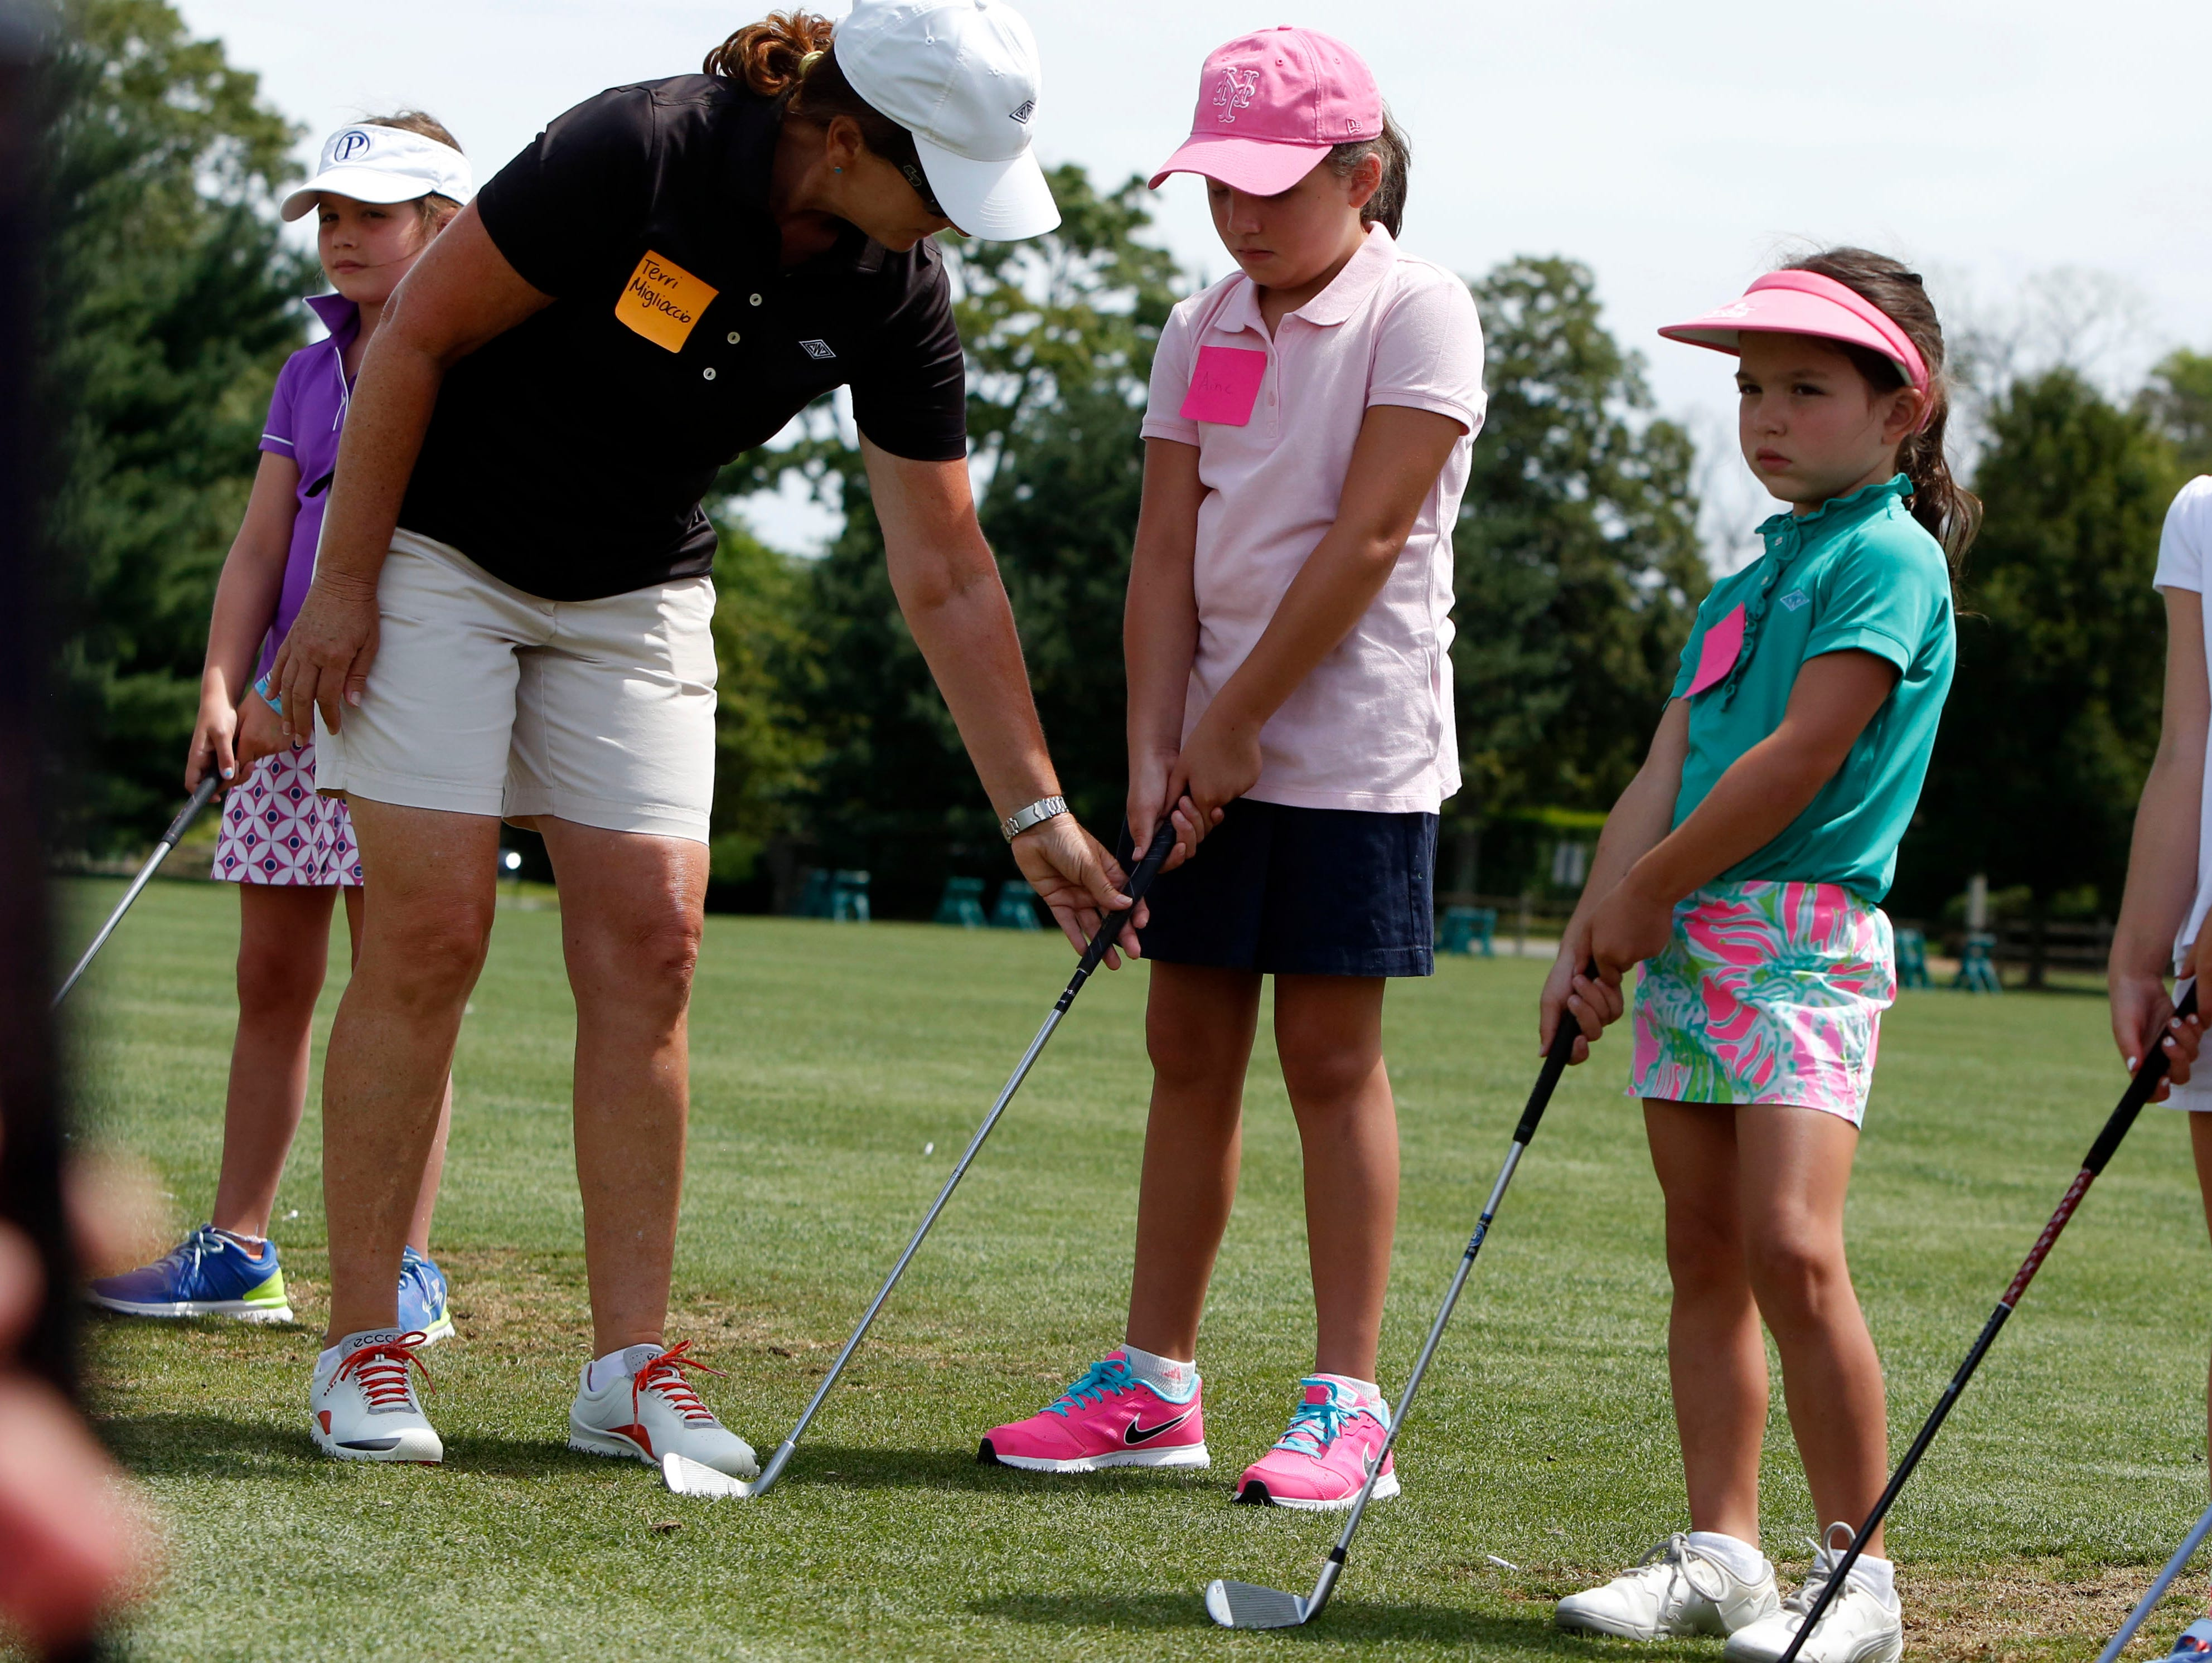 Golf professional Terri Migliaccio guides Aine Breen, 8, of Port Chester during the annual Girls to the Tee event put on by the Women's Metropolitan Golf Association at Westchester Country Club in Rye, Aug. 8, 2016. The free clinic, for girls ages 6-18, is an afternoon of instruction and networking to help show girls who are learning the game that they are part of a larger group.